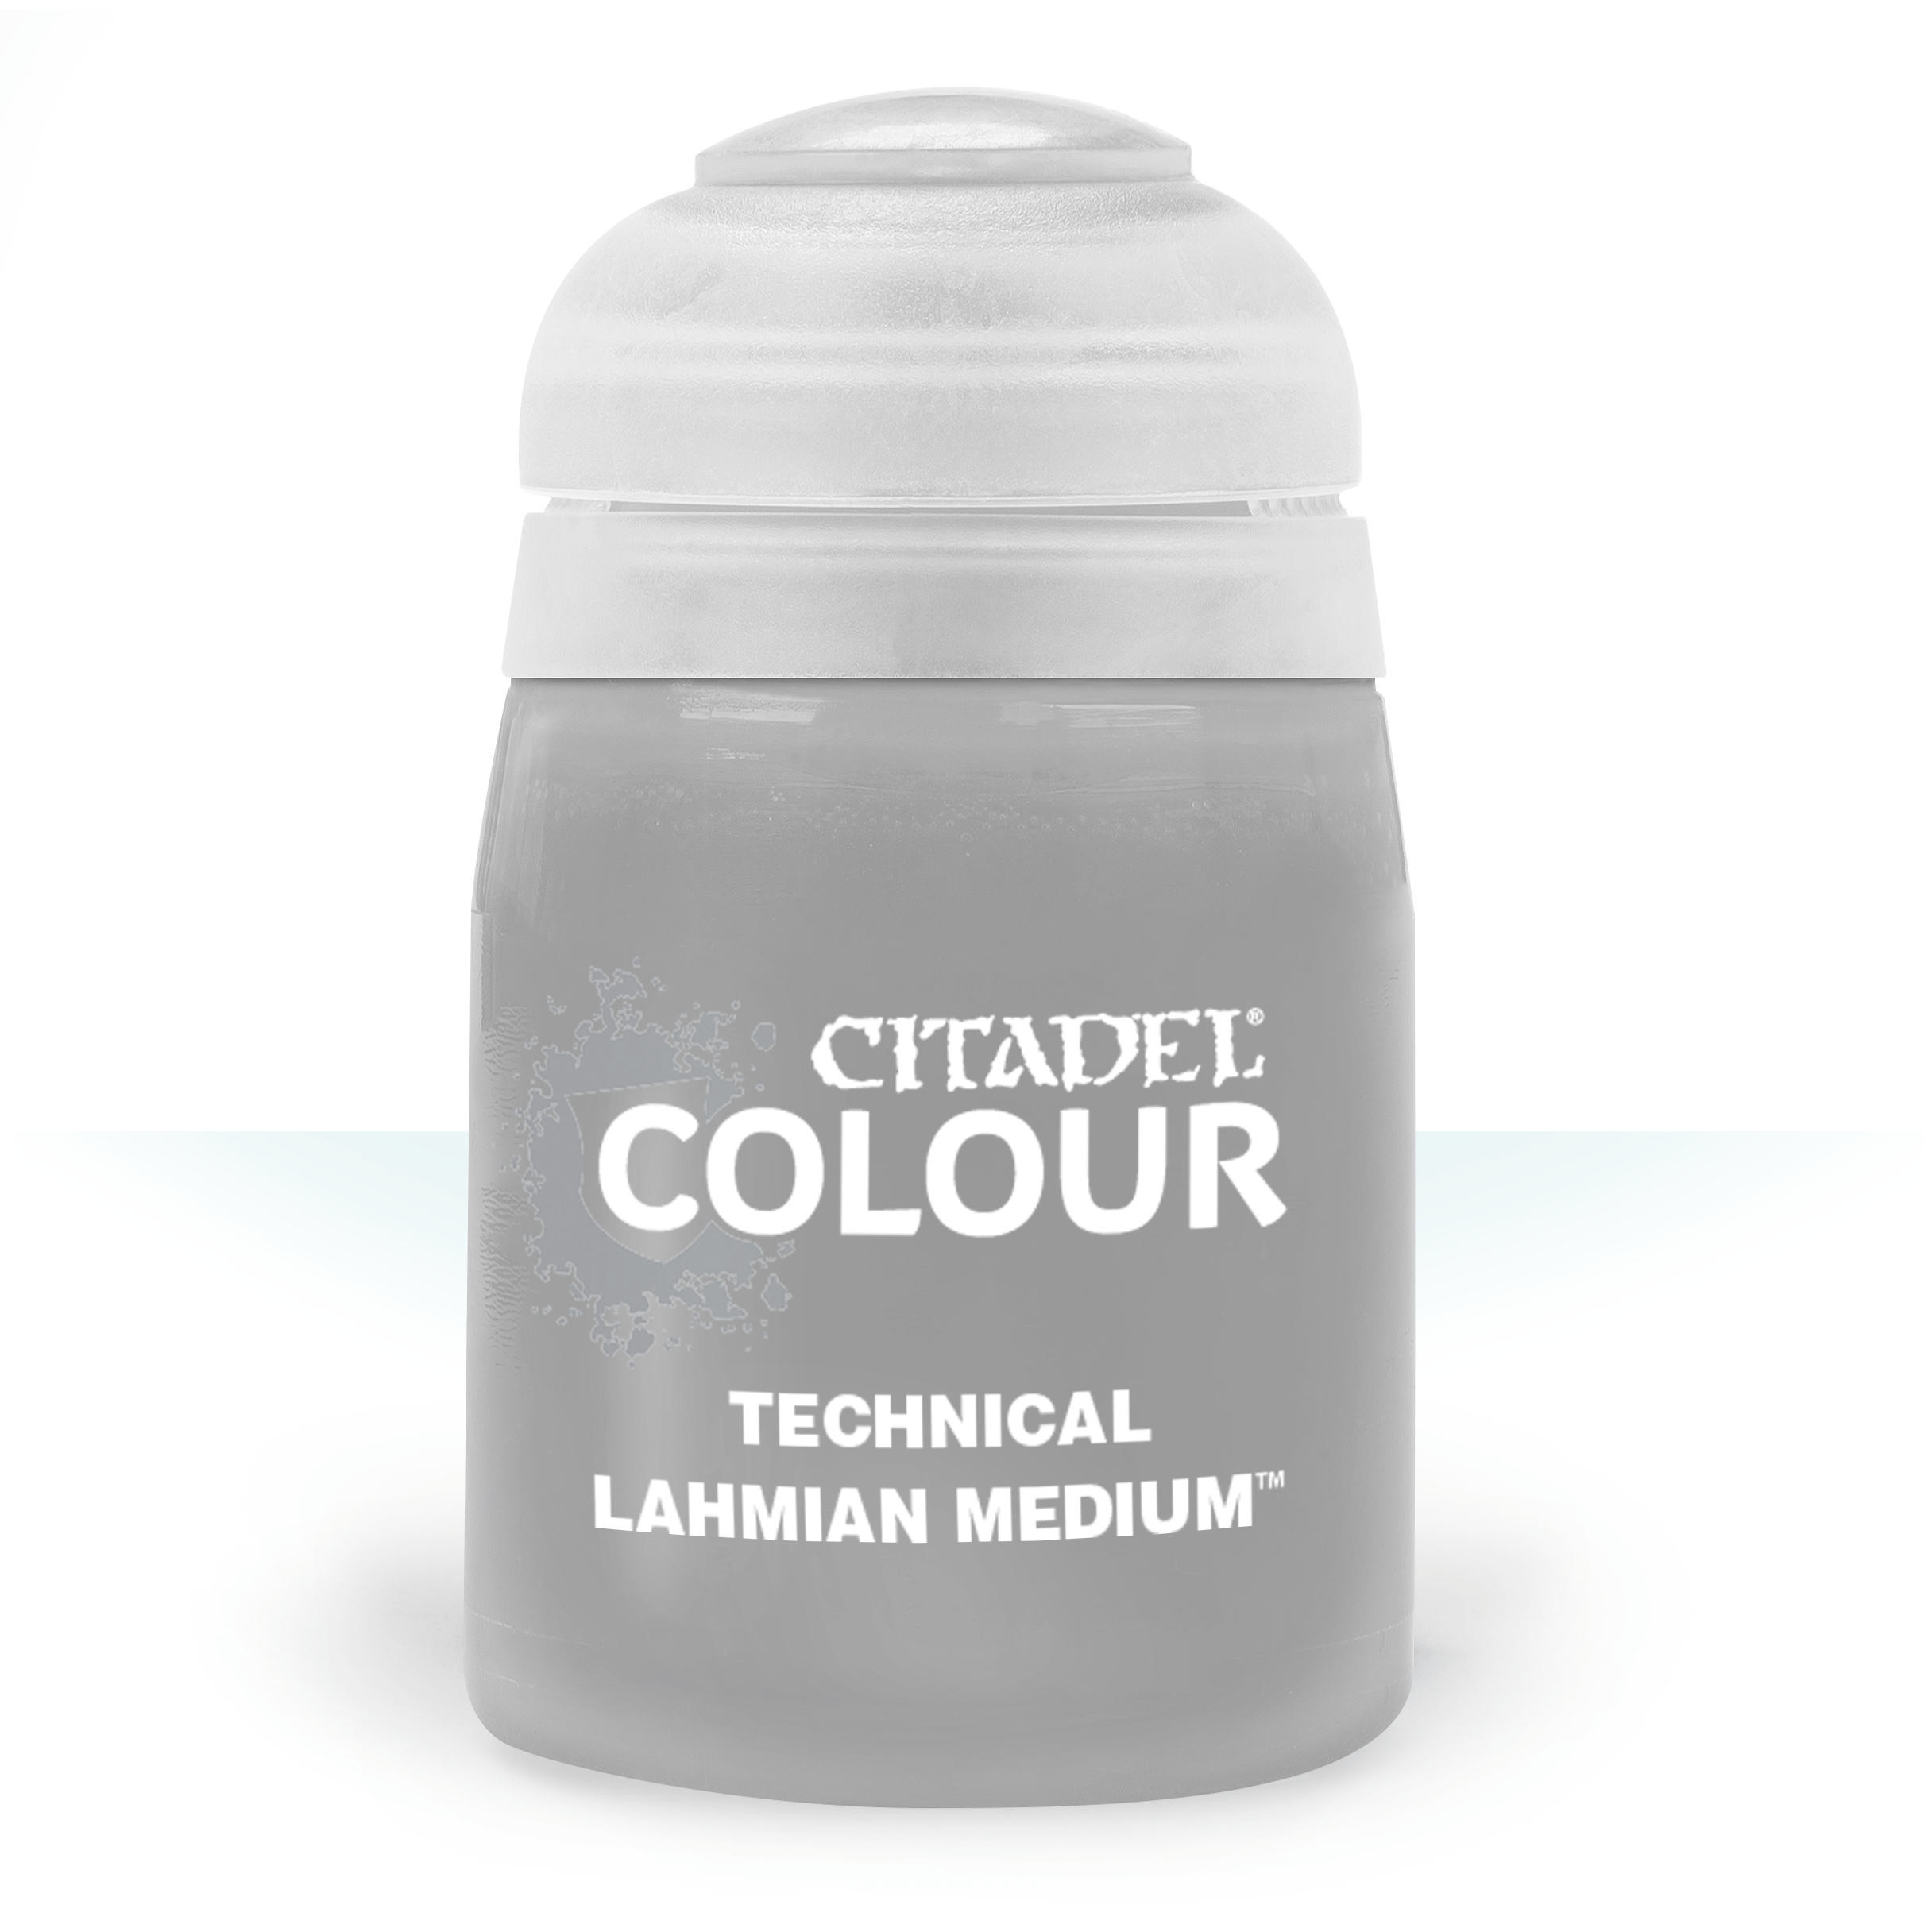 Lahmian Medium, Citadel Technical 24ml